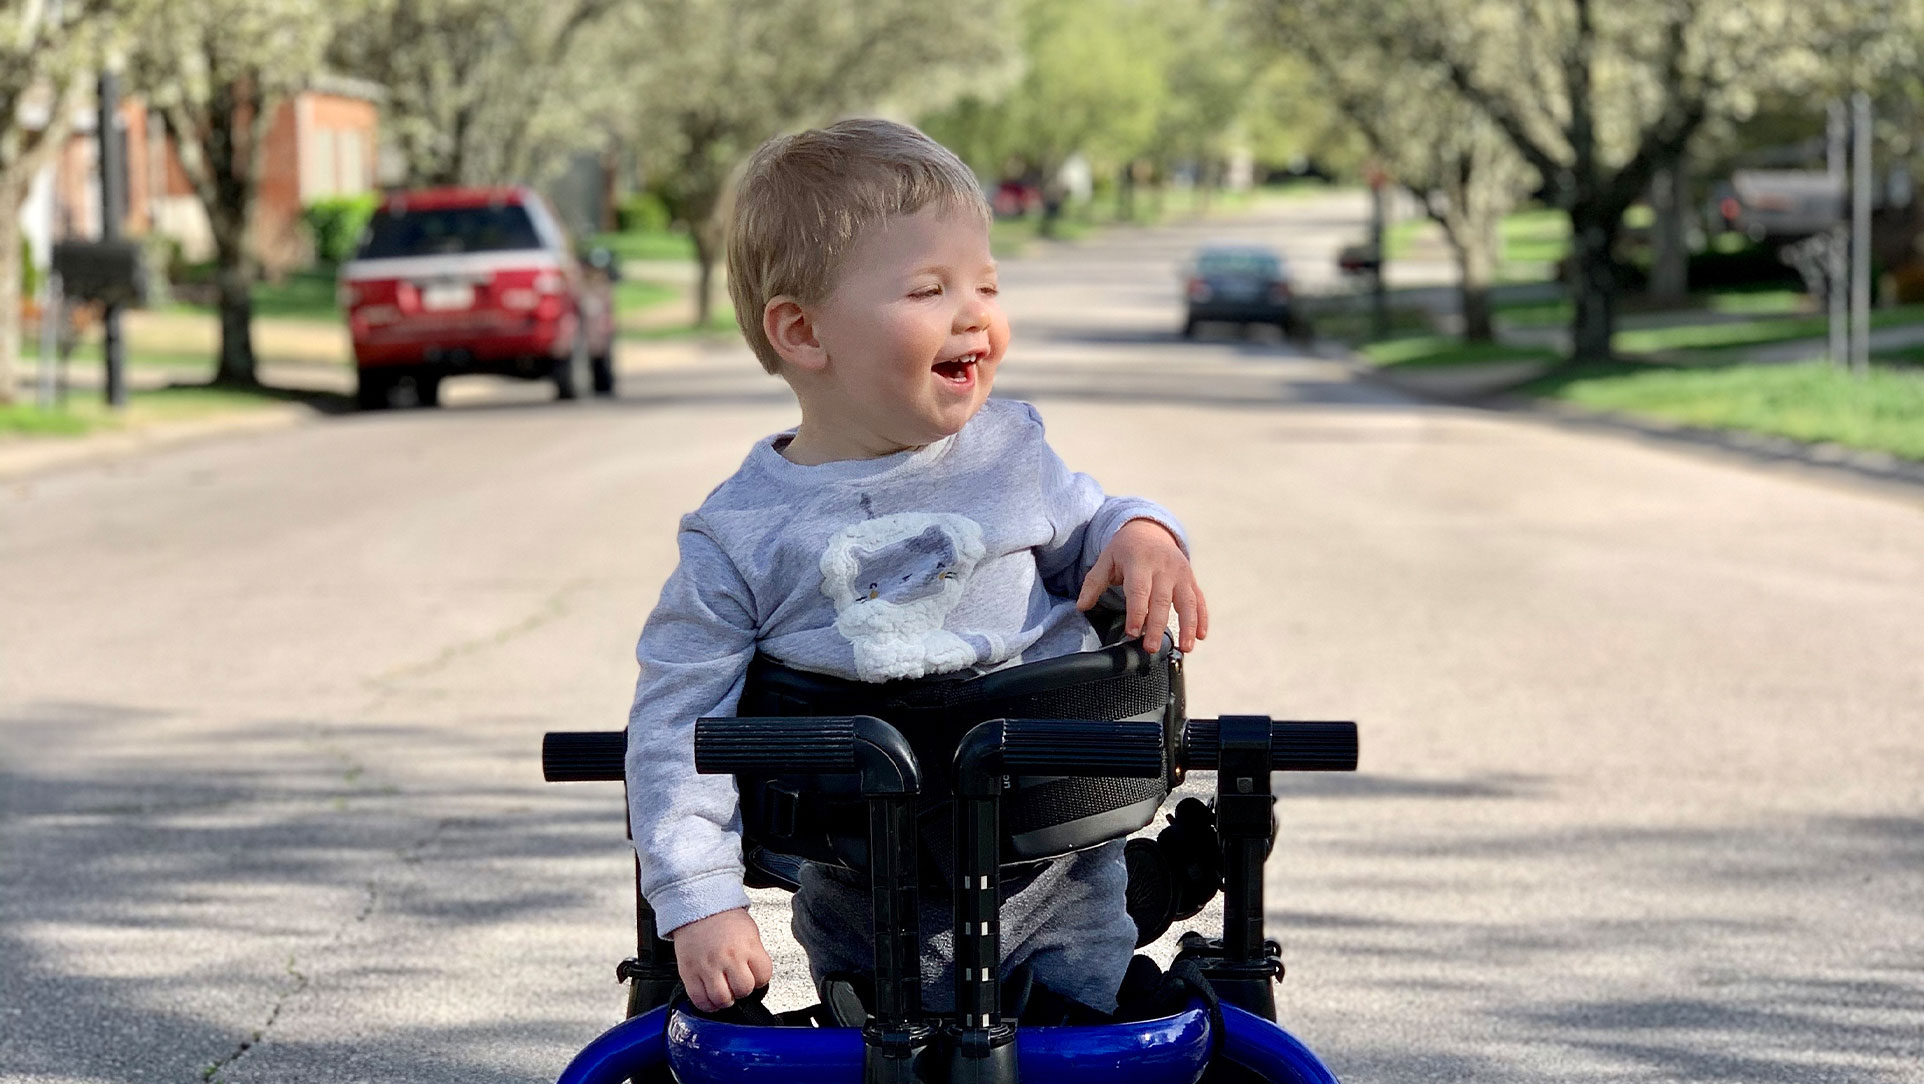 Rory stands smiling in an outside setting with the support of his gait trainer. An assistive medical device designed to train him in his walking pattern and assist with slow progressive weight bearing. He is wearing a grey lion sweatshirt with matching sweatpants.